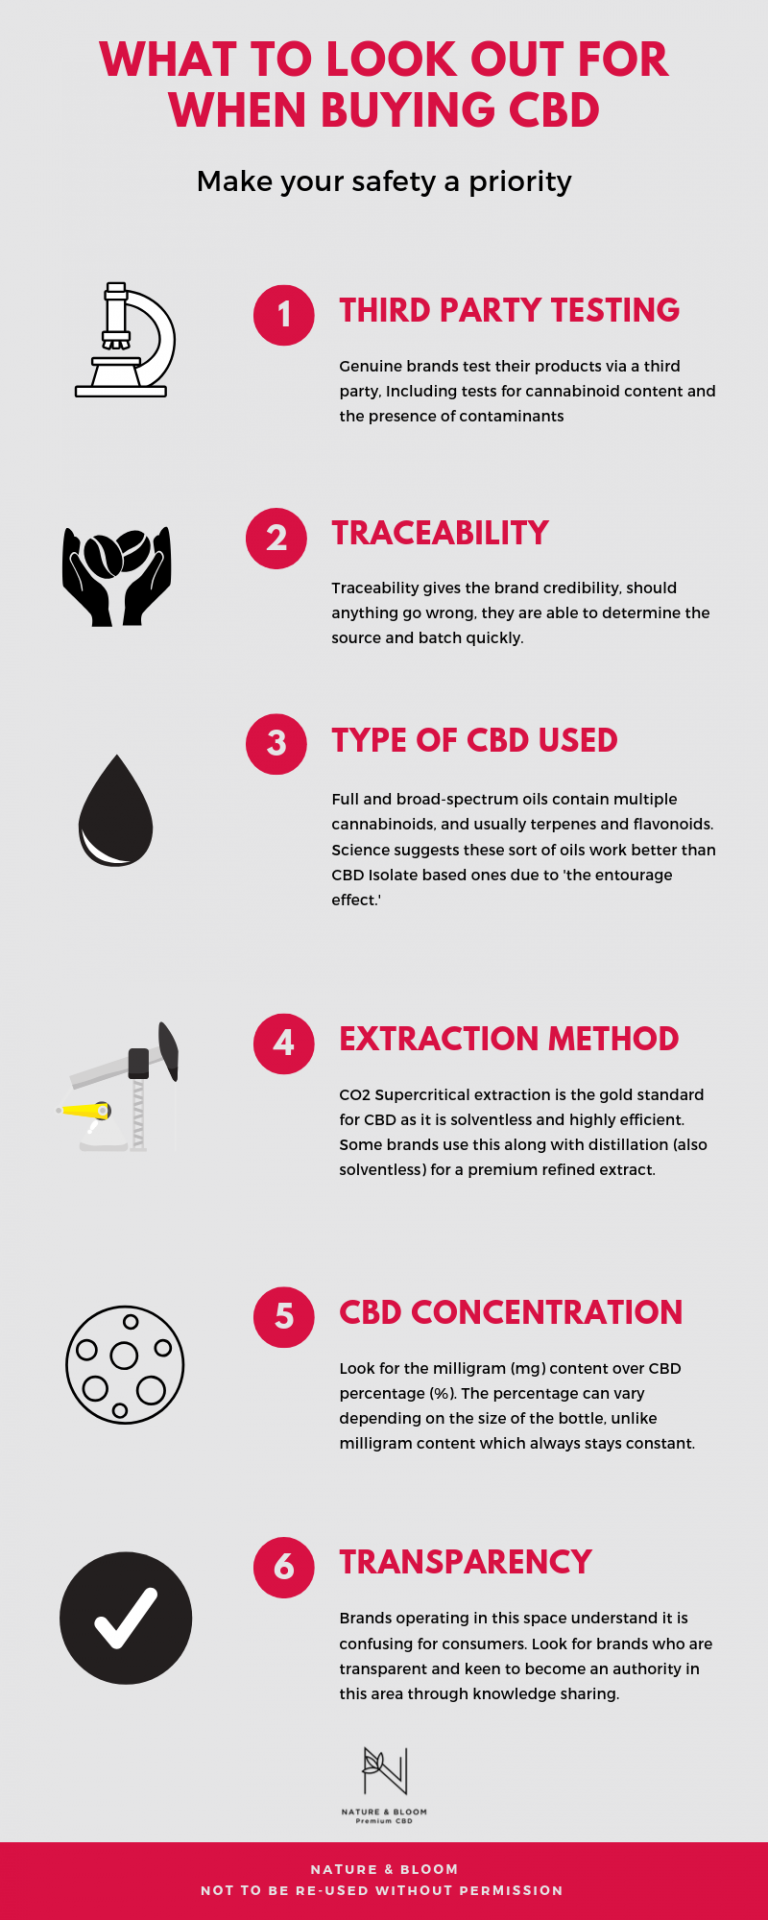 What to look out for when buying CBD